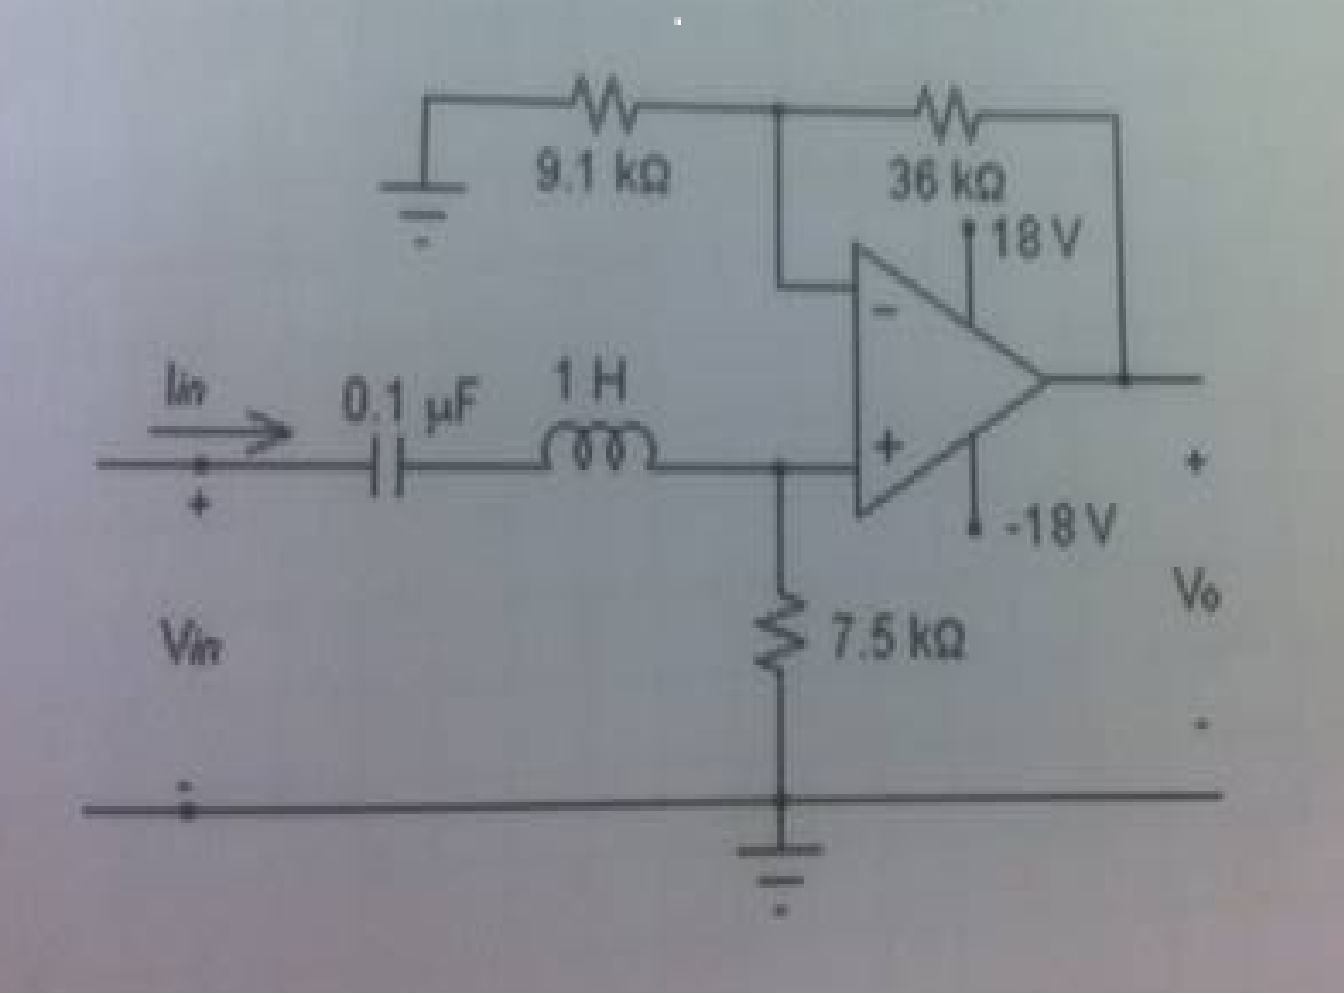 Measure Zin and the voltage gain of the following